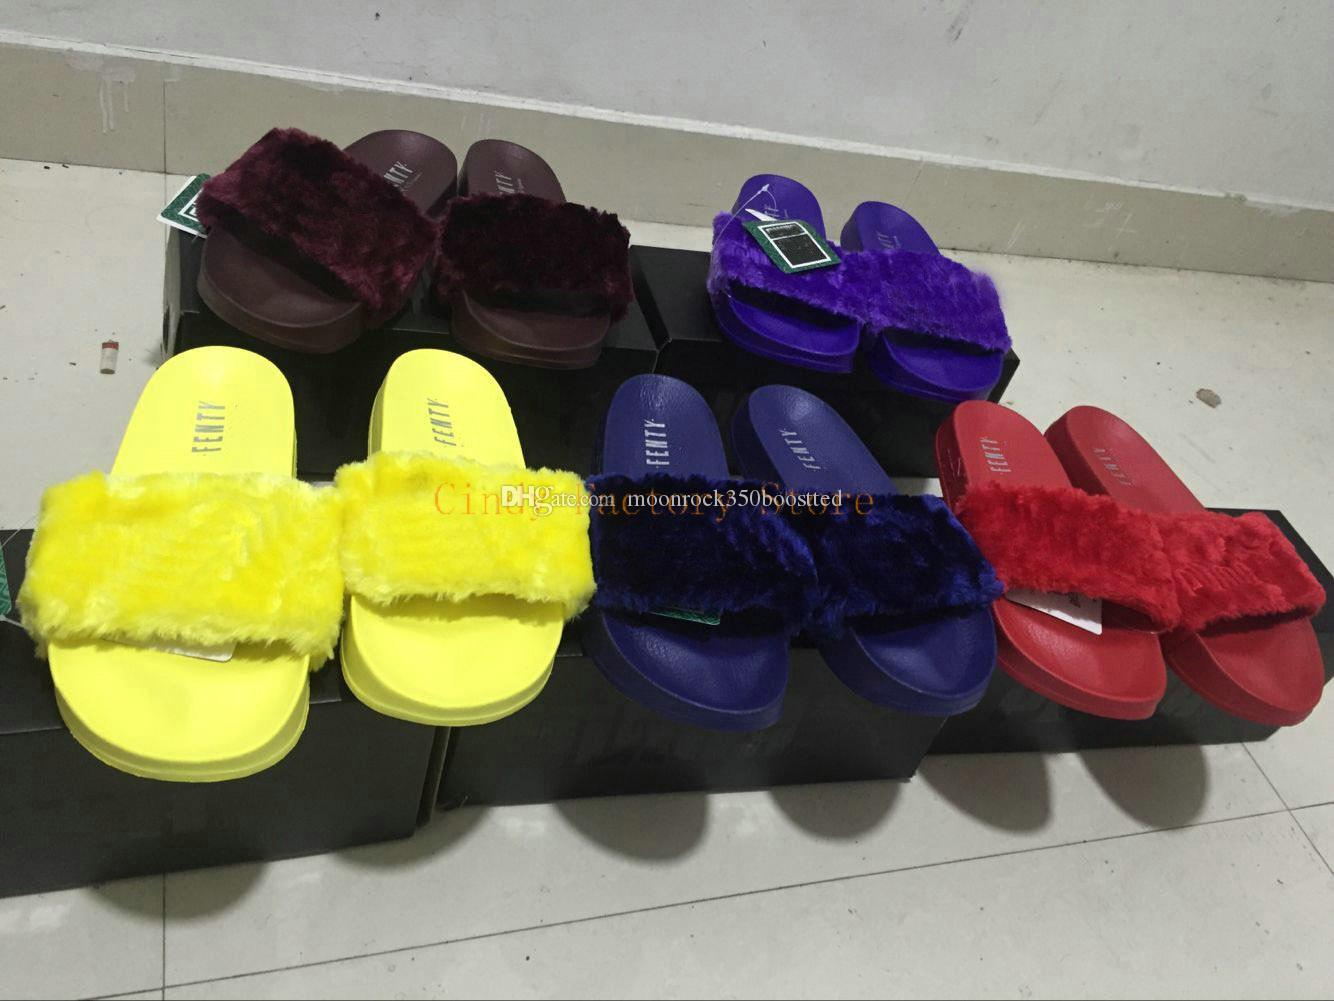 reputable site 3008c fb1a2 Rihanna LEADCAT FENTY New Color Red Slipper Faux Fur Burgundy Slide  Slippers Purple Slides Sandals Women Shoes Box & Dustbag Mid Calf Boots  Leather ...